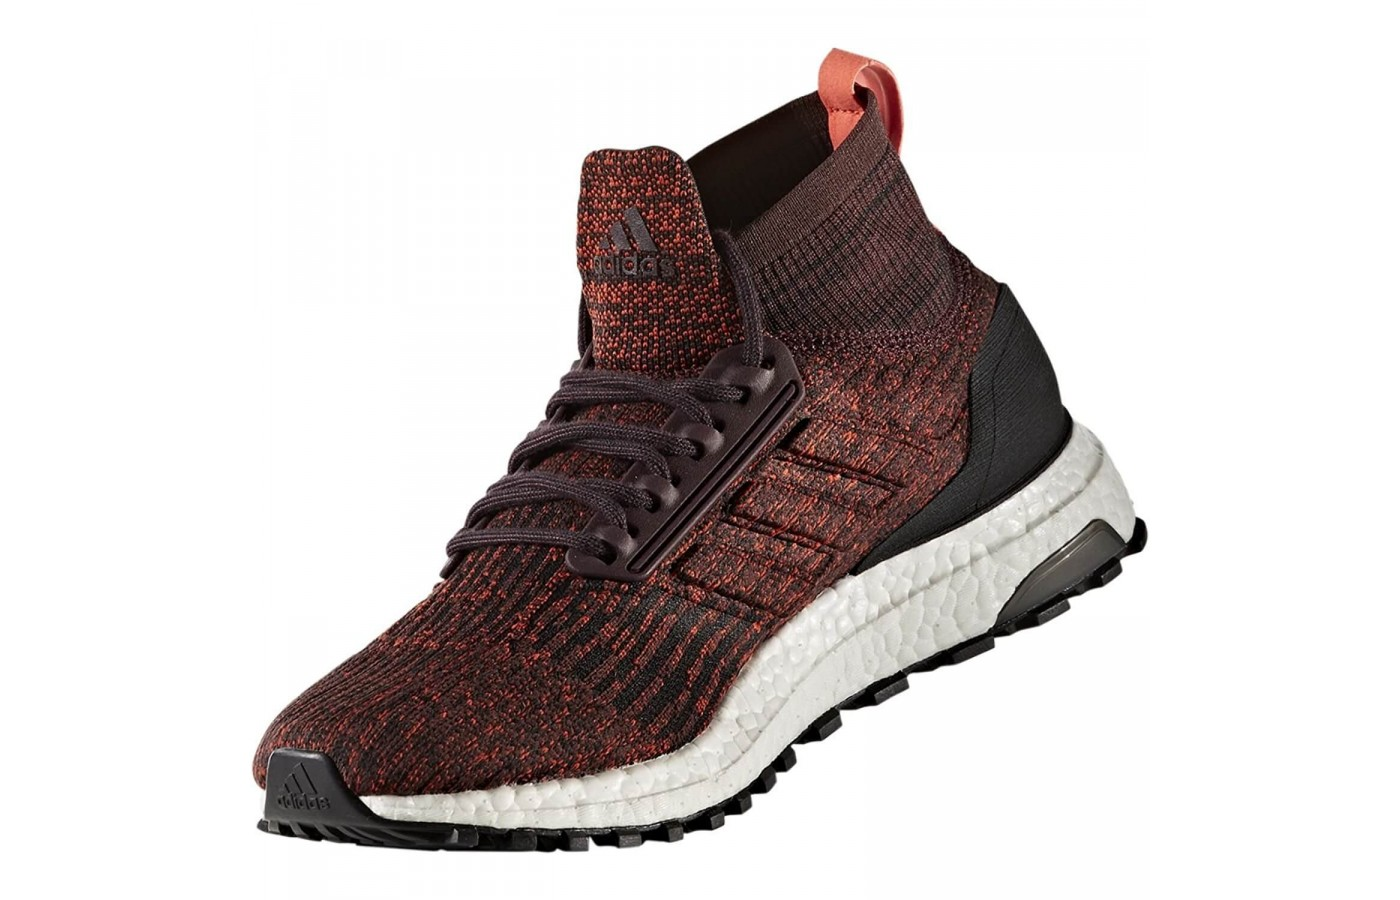 Running shoes | Winter running partner Adidas Ultra Boost